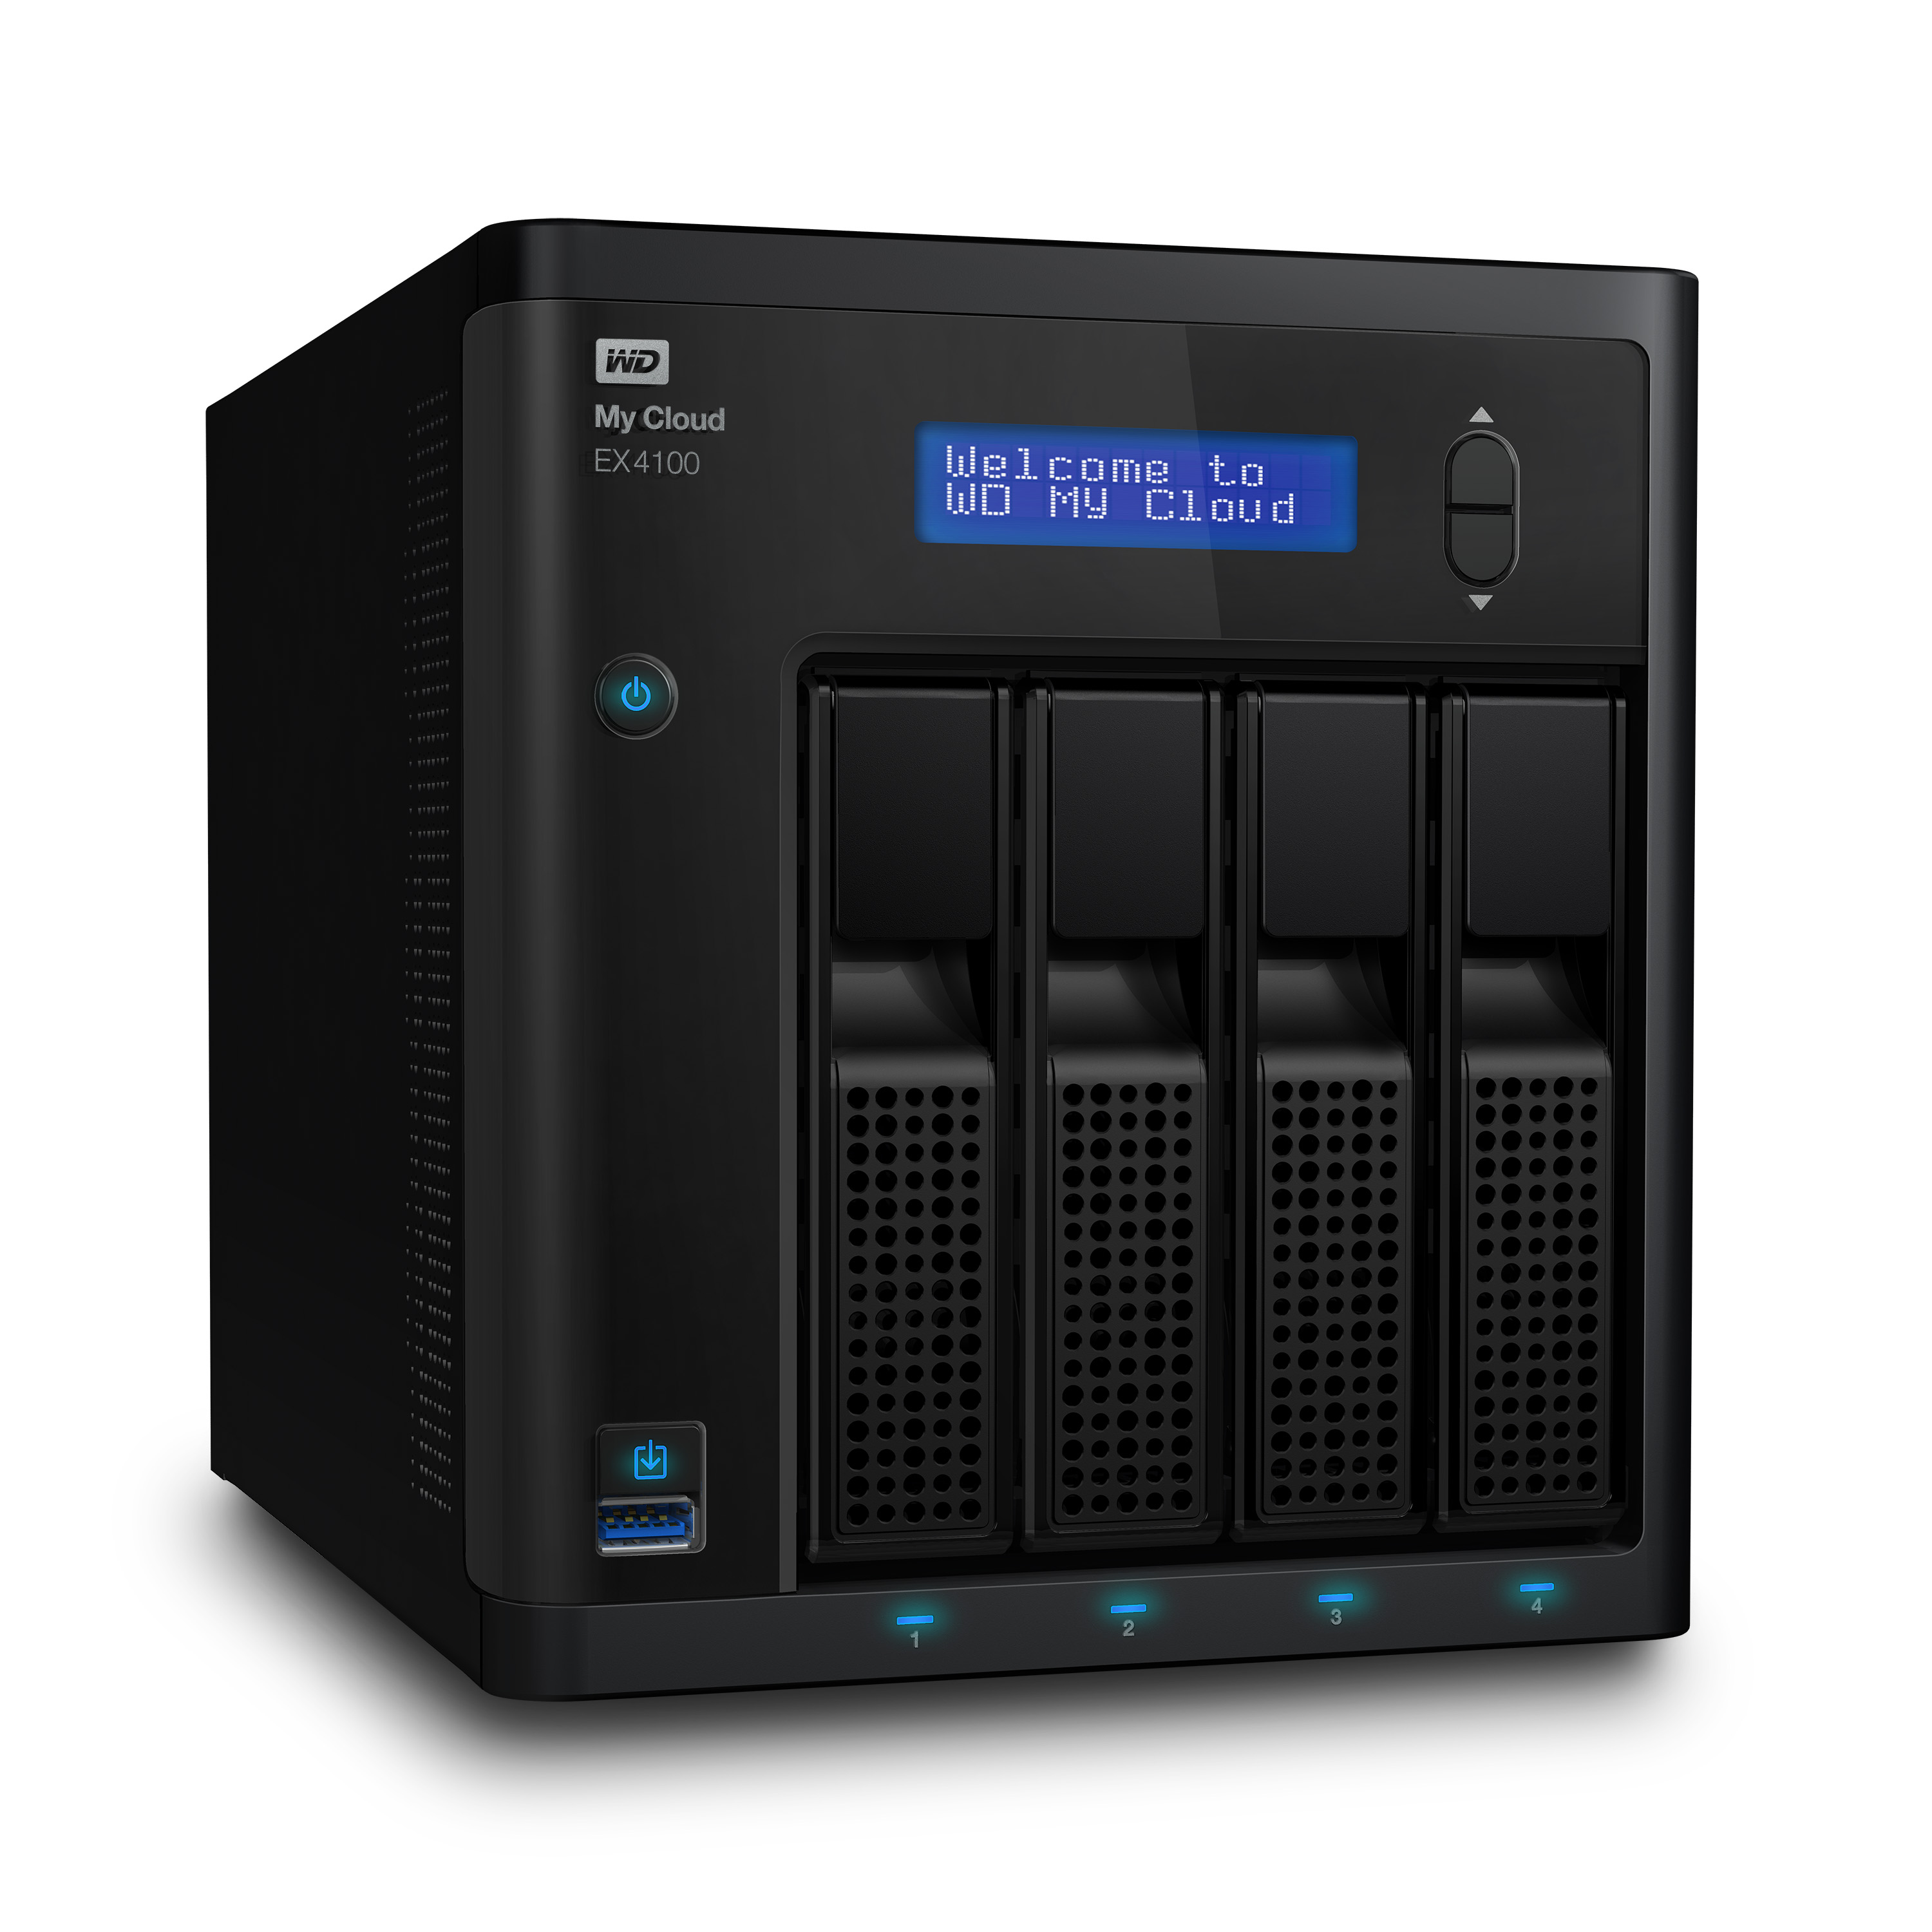 WD MyCloud EX4100 NAS press image courtesy of Western Digital